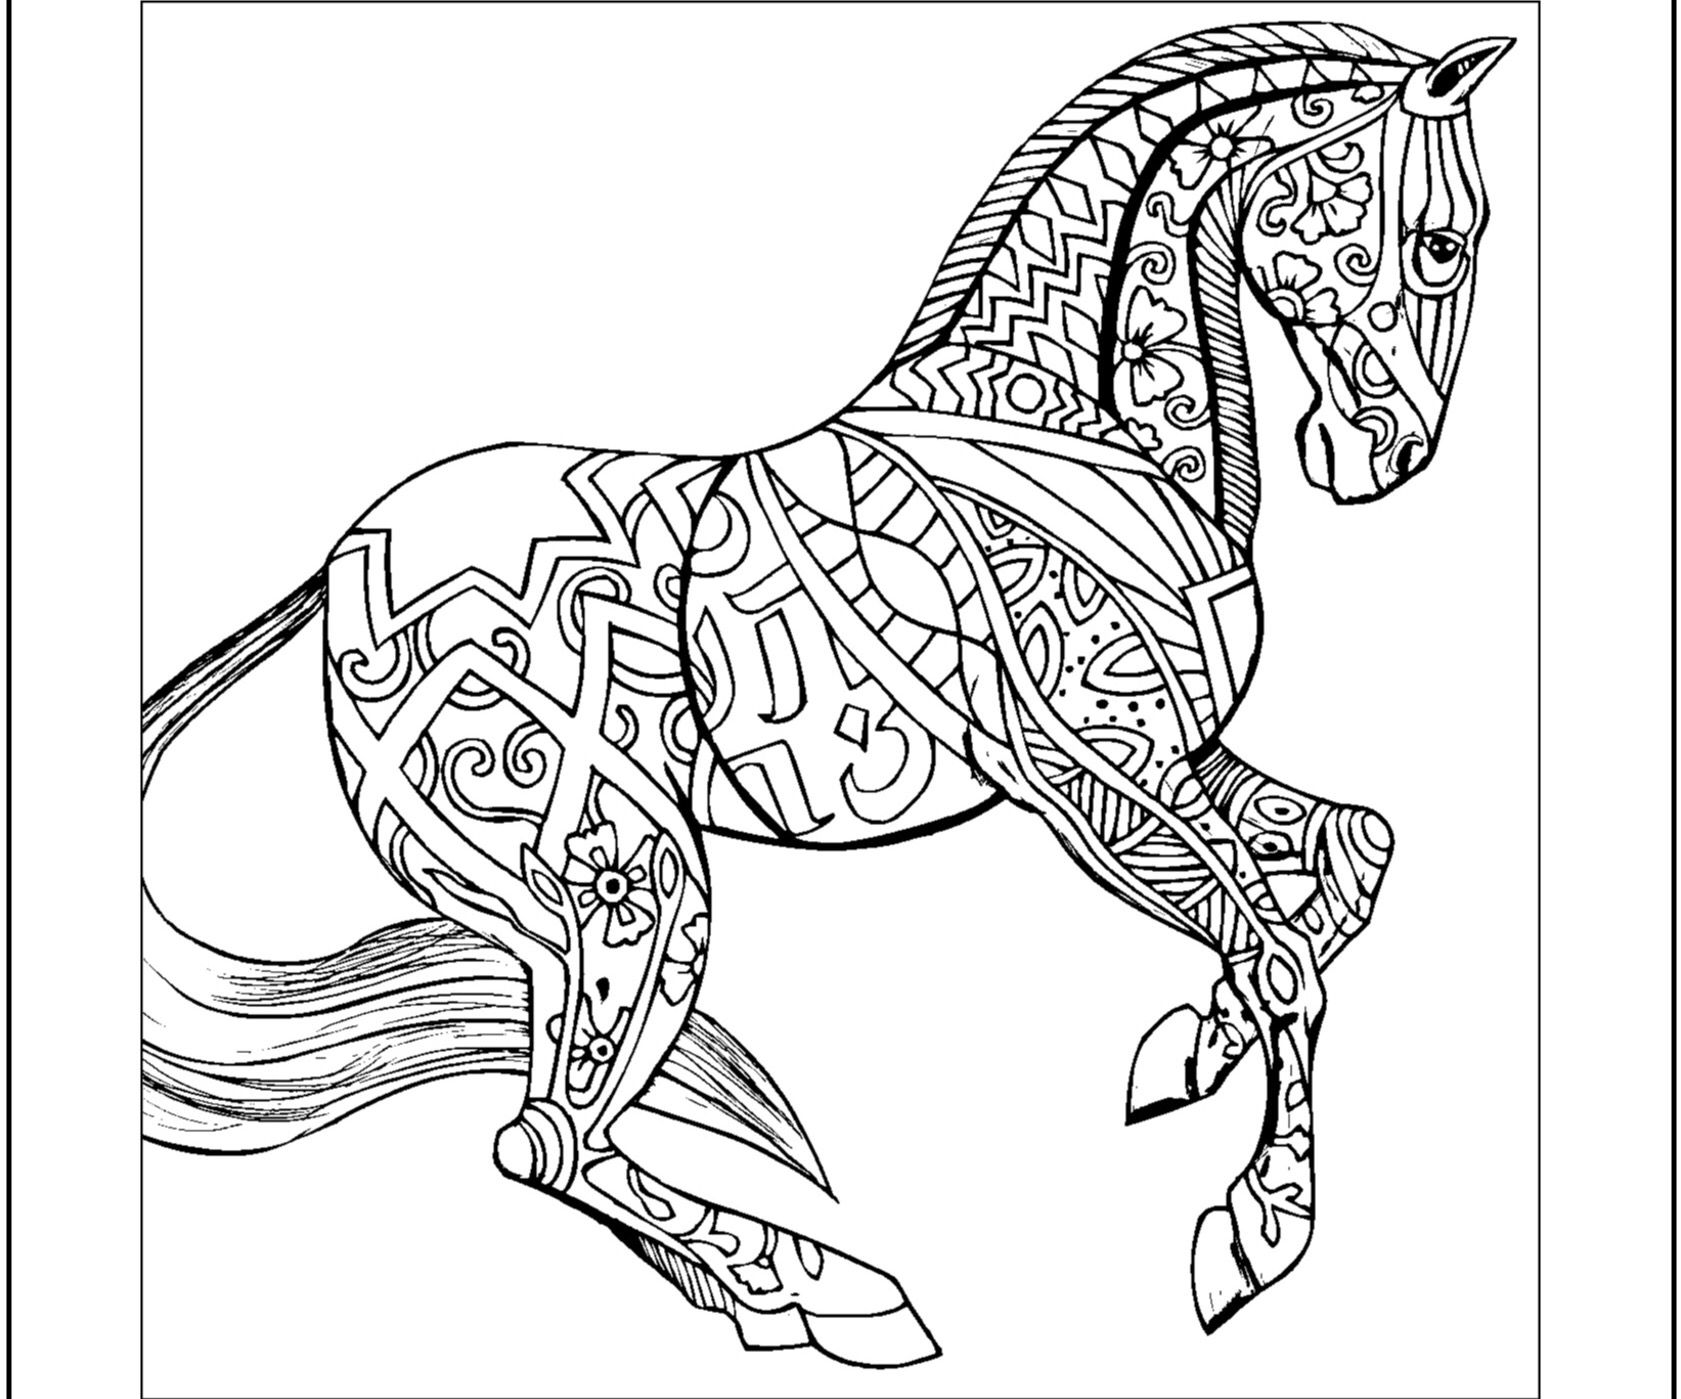 horses to print and color fun horse coloring pages for your kids printable color print horses to and